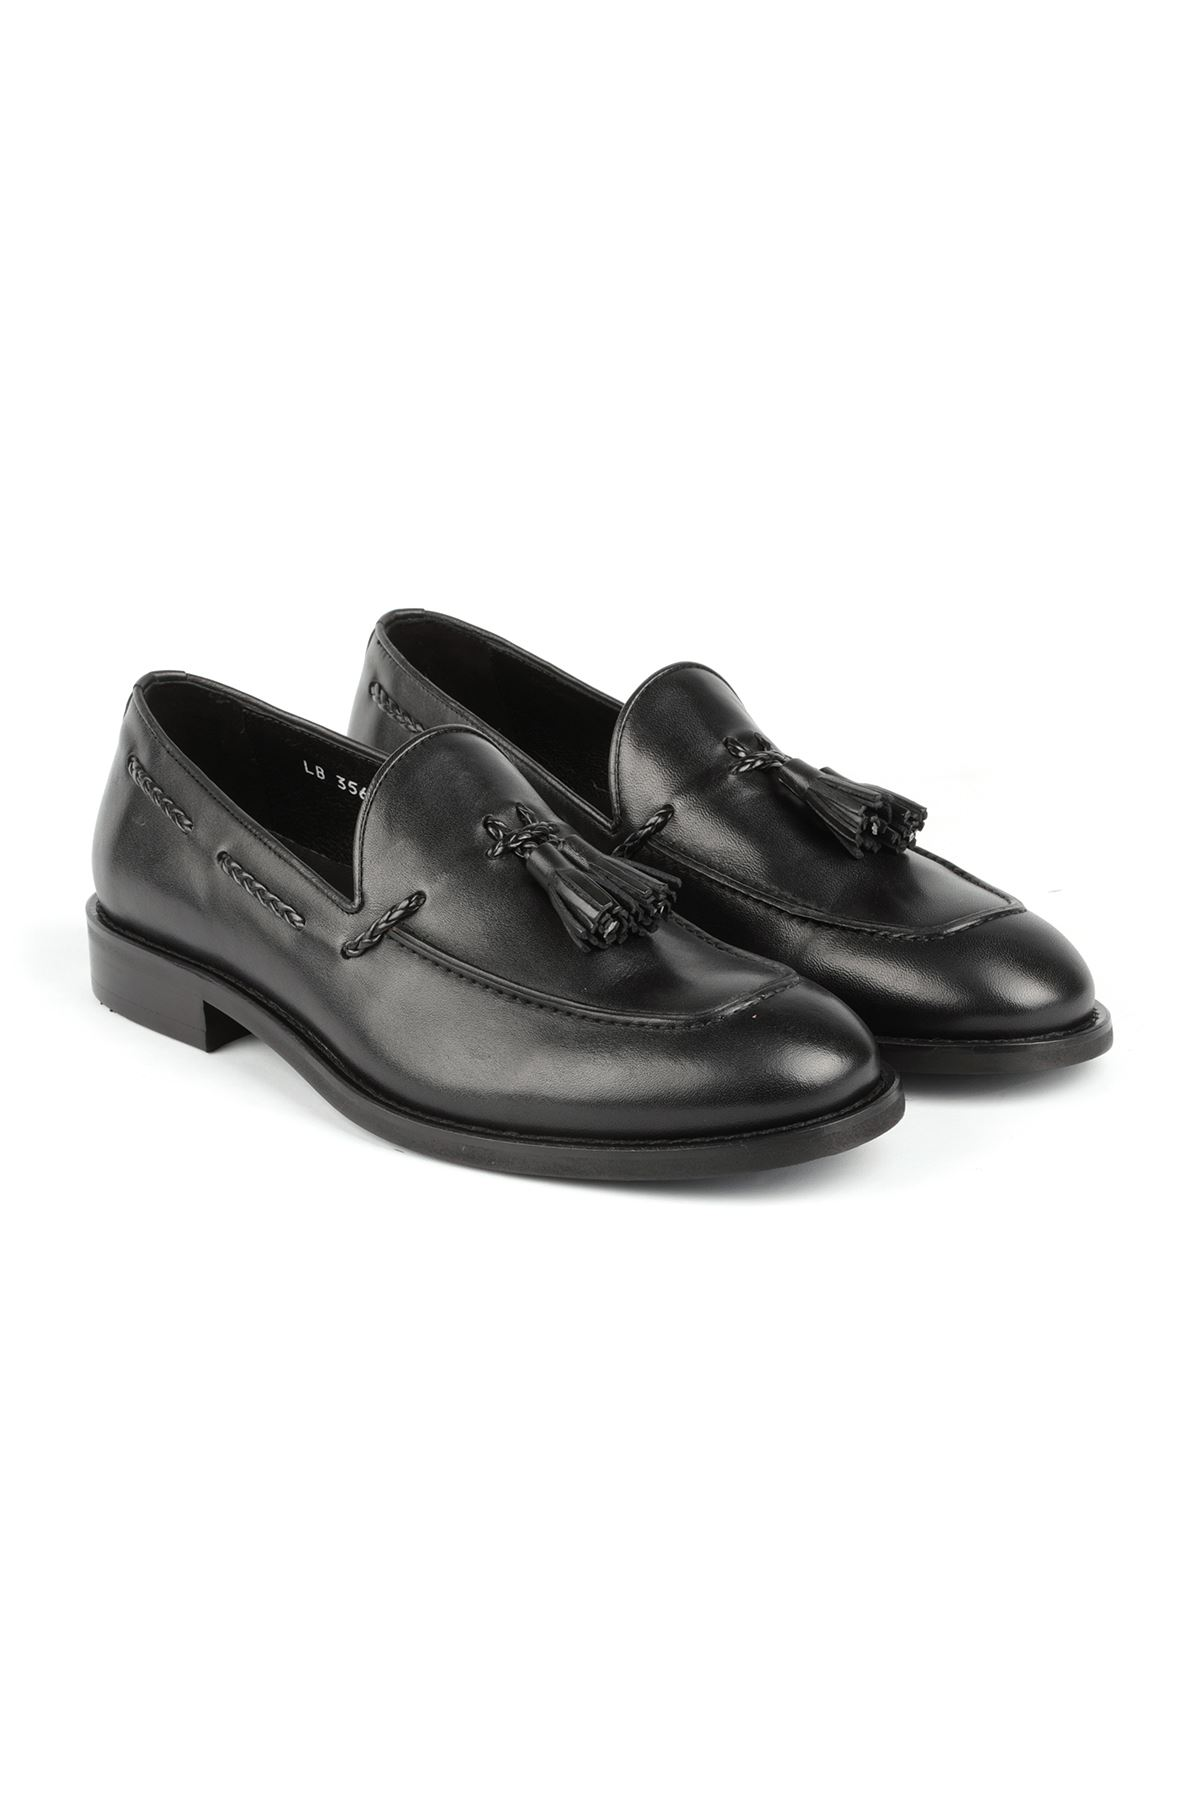 Libero L3562 Black Loafer Casual Shoes